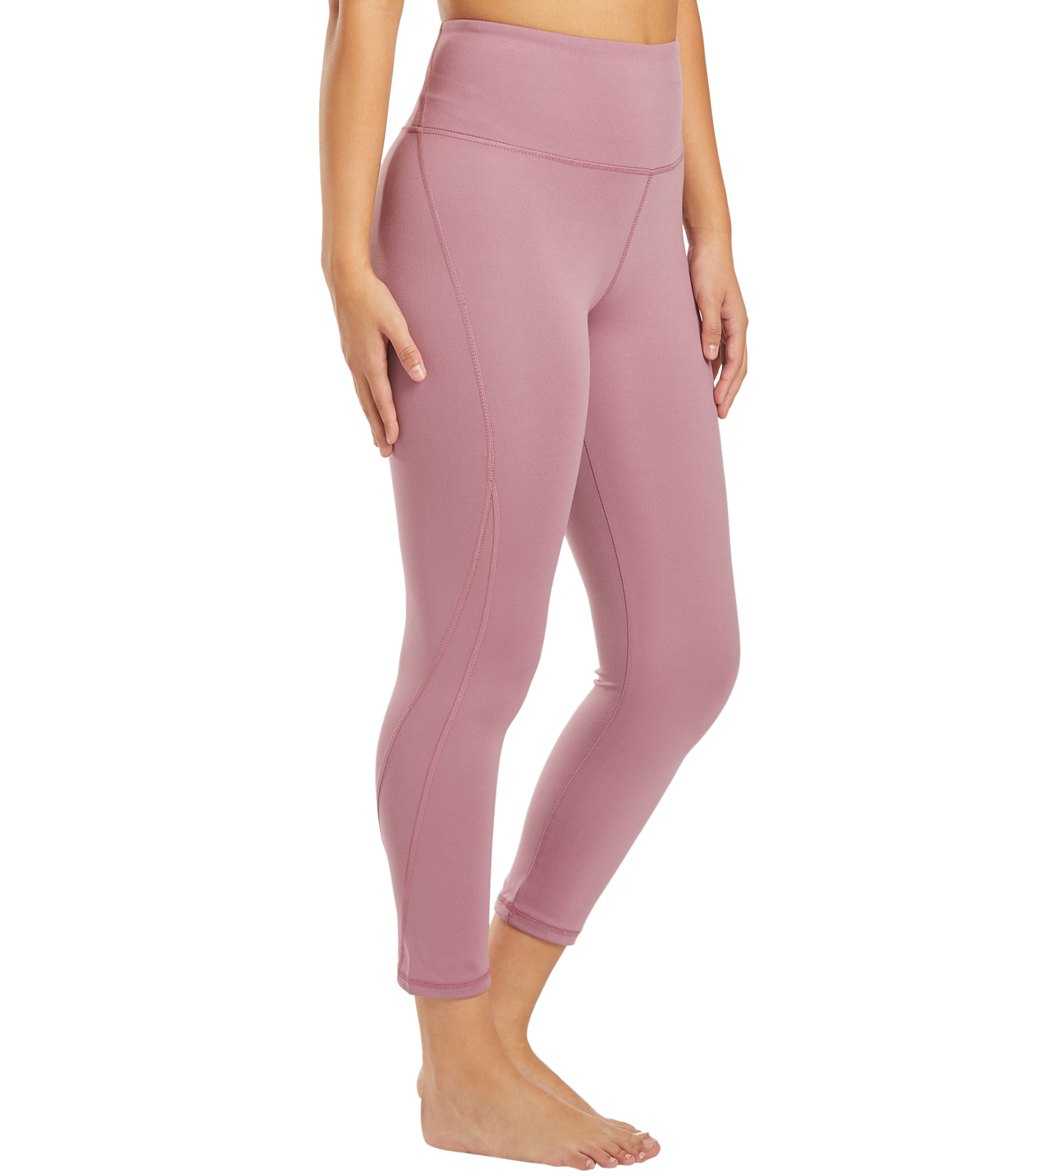 Balance Collection Briar High Waisted Yoga Capri Pants - Dusky Orchid Cotton